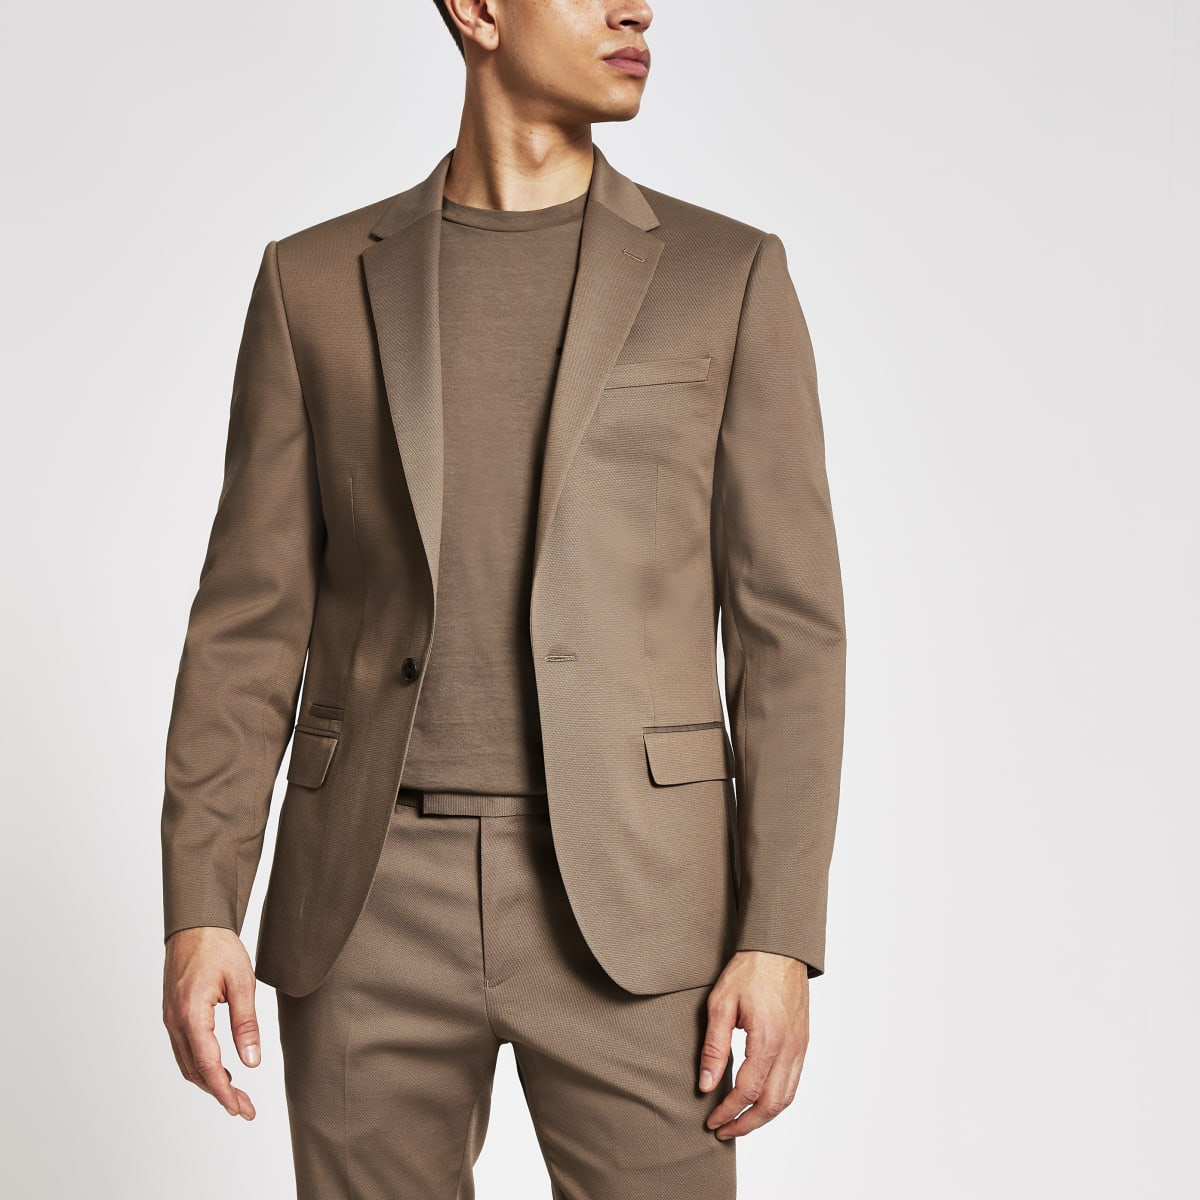 Brown single breasted skinny fit suit jacket